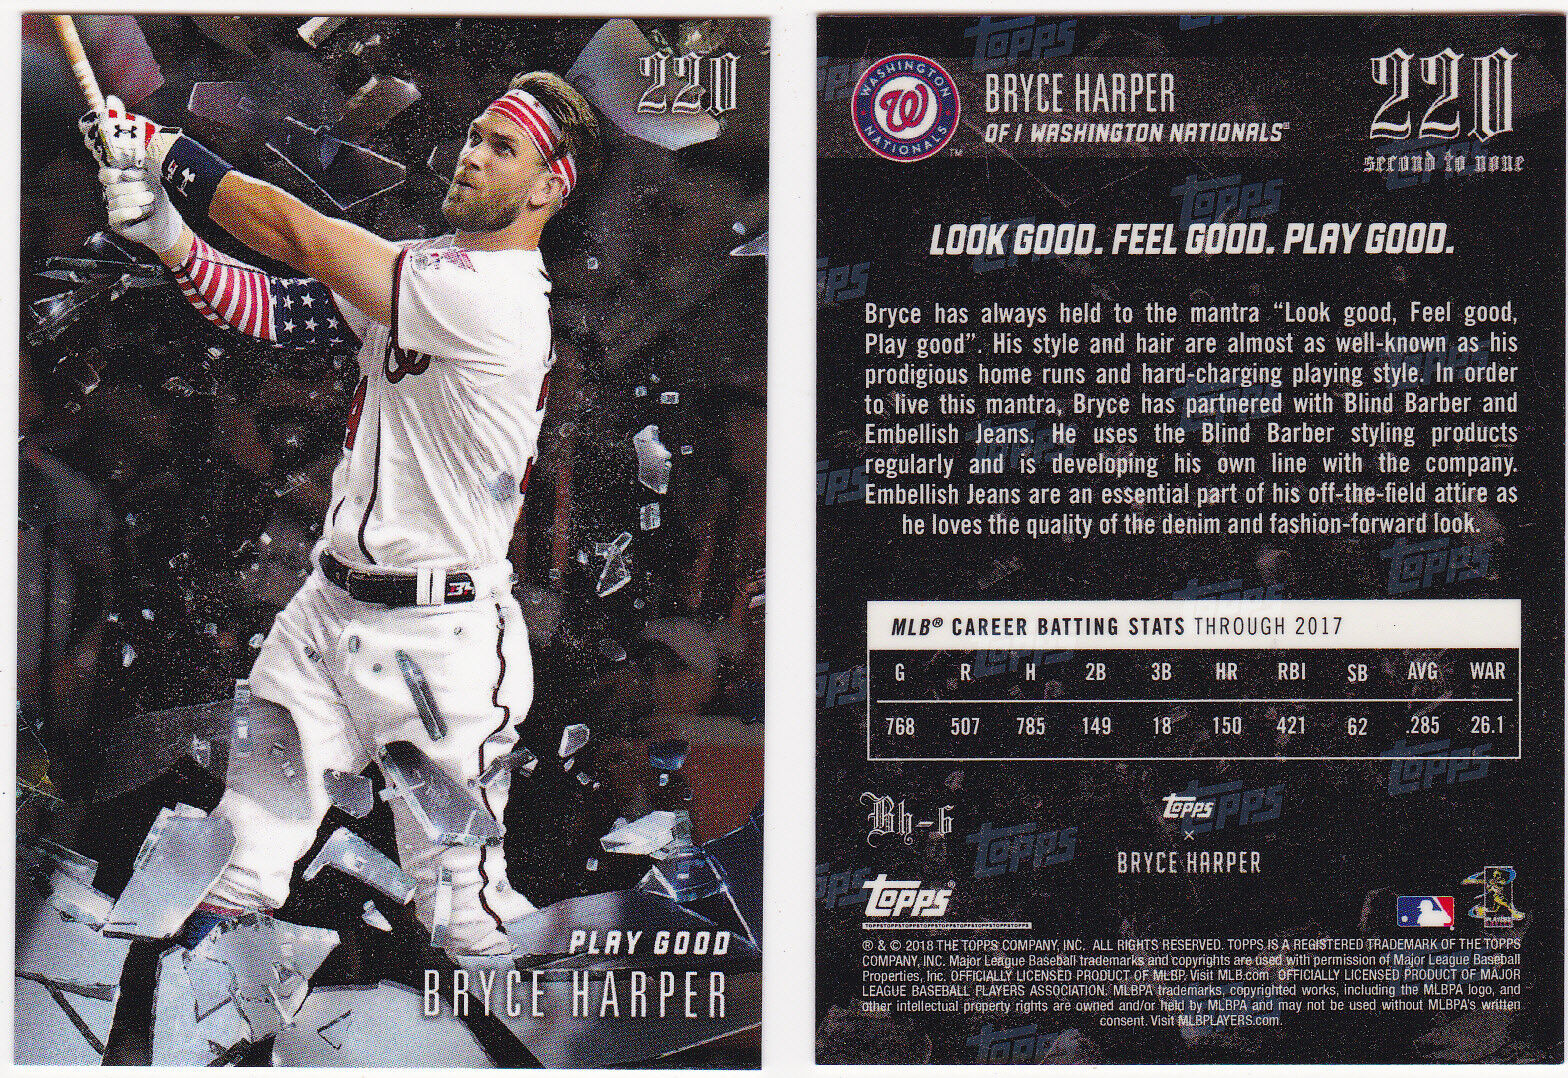 2018 Topps 220 Bryce Harper Second To None Play Good BH-6 Nationals SP 5196 - $1.95